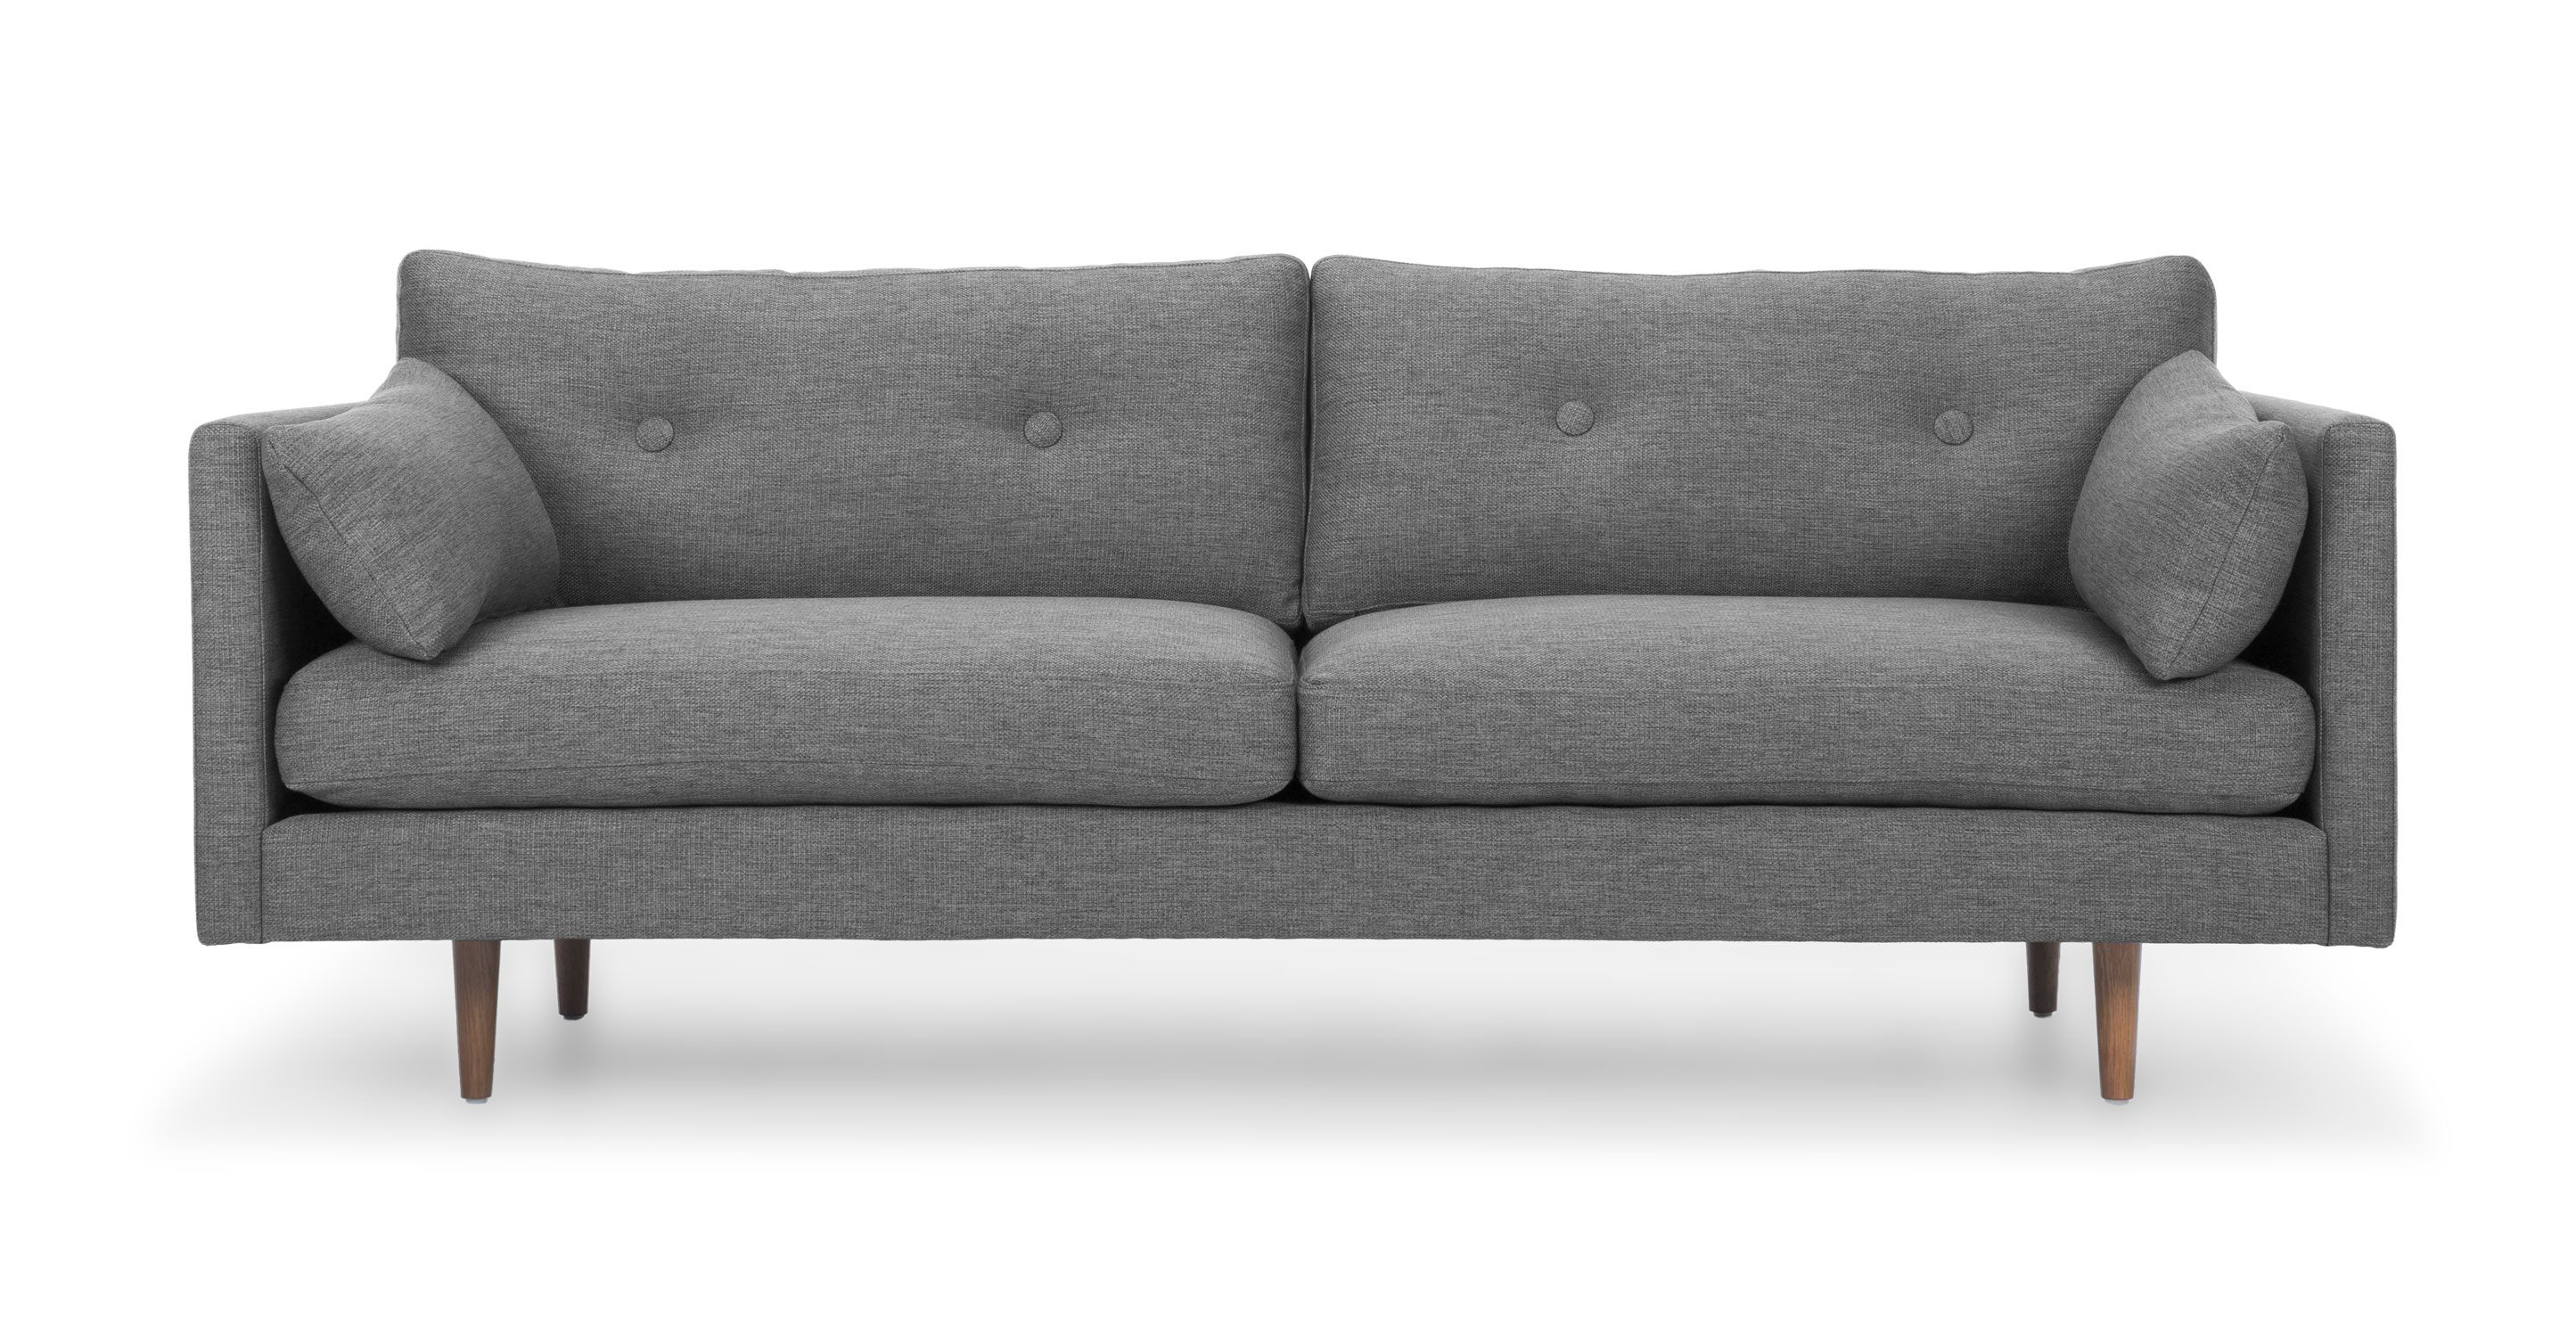 couch century couches furniture modern springs palm mid dallas best